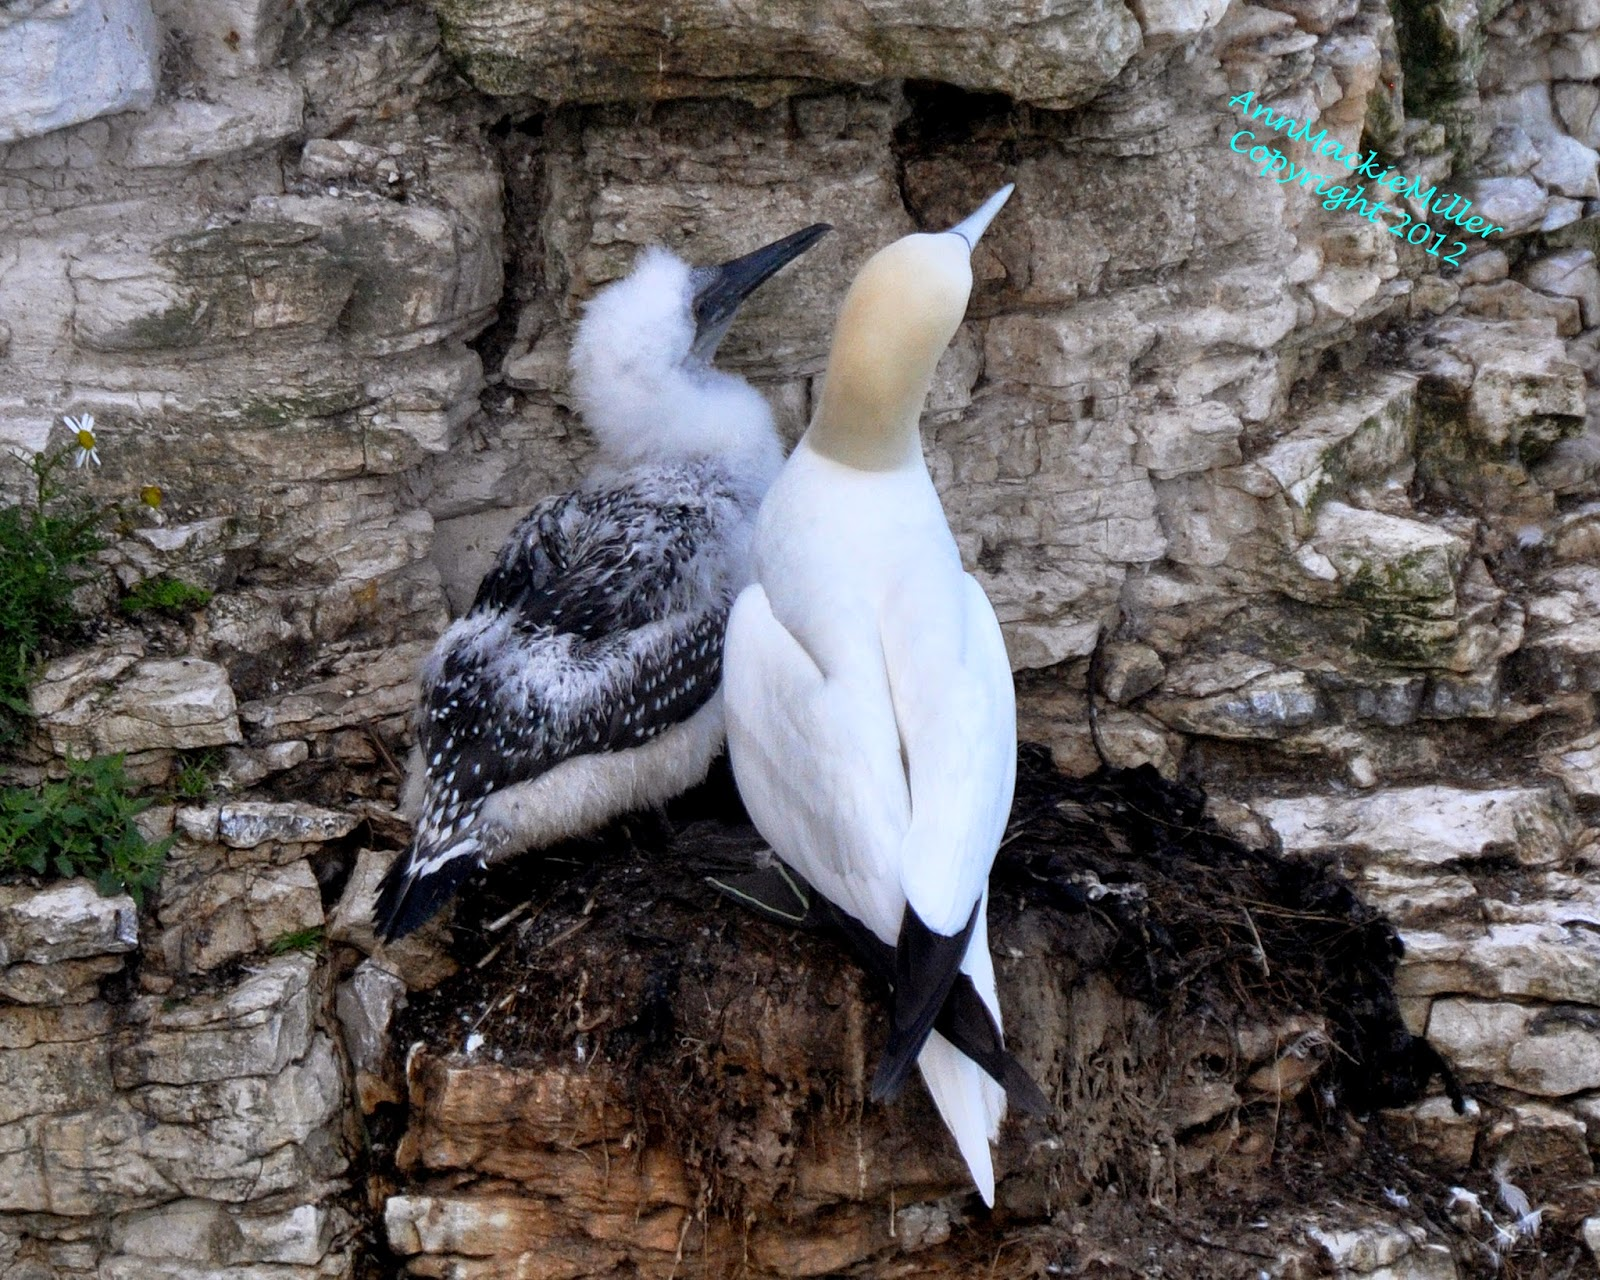 Adult Gannet with Gannet Chick on Cliff Edge Nest